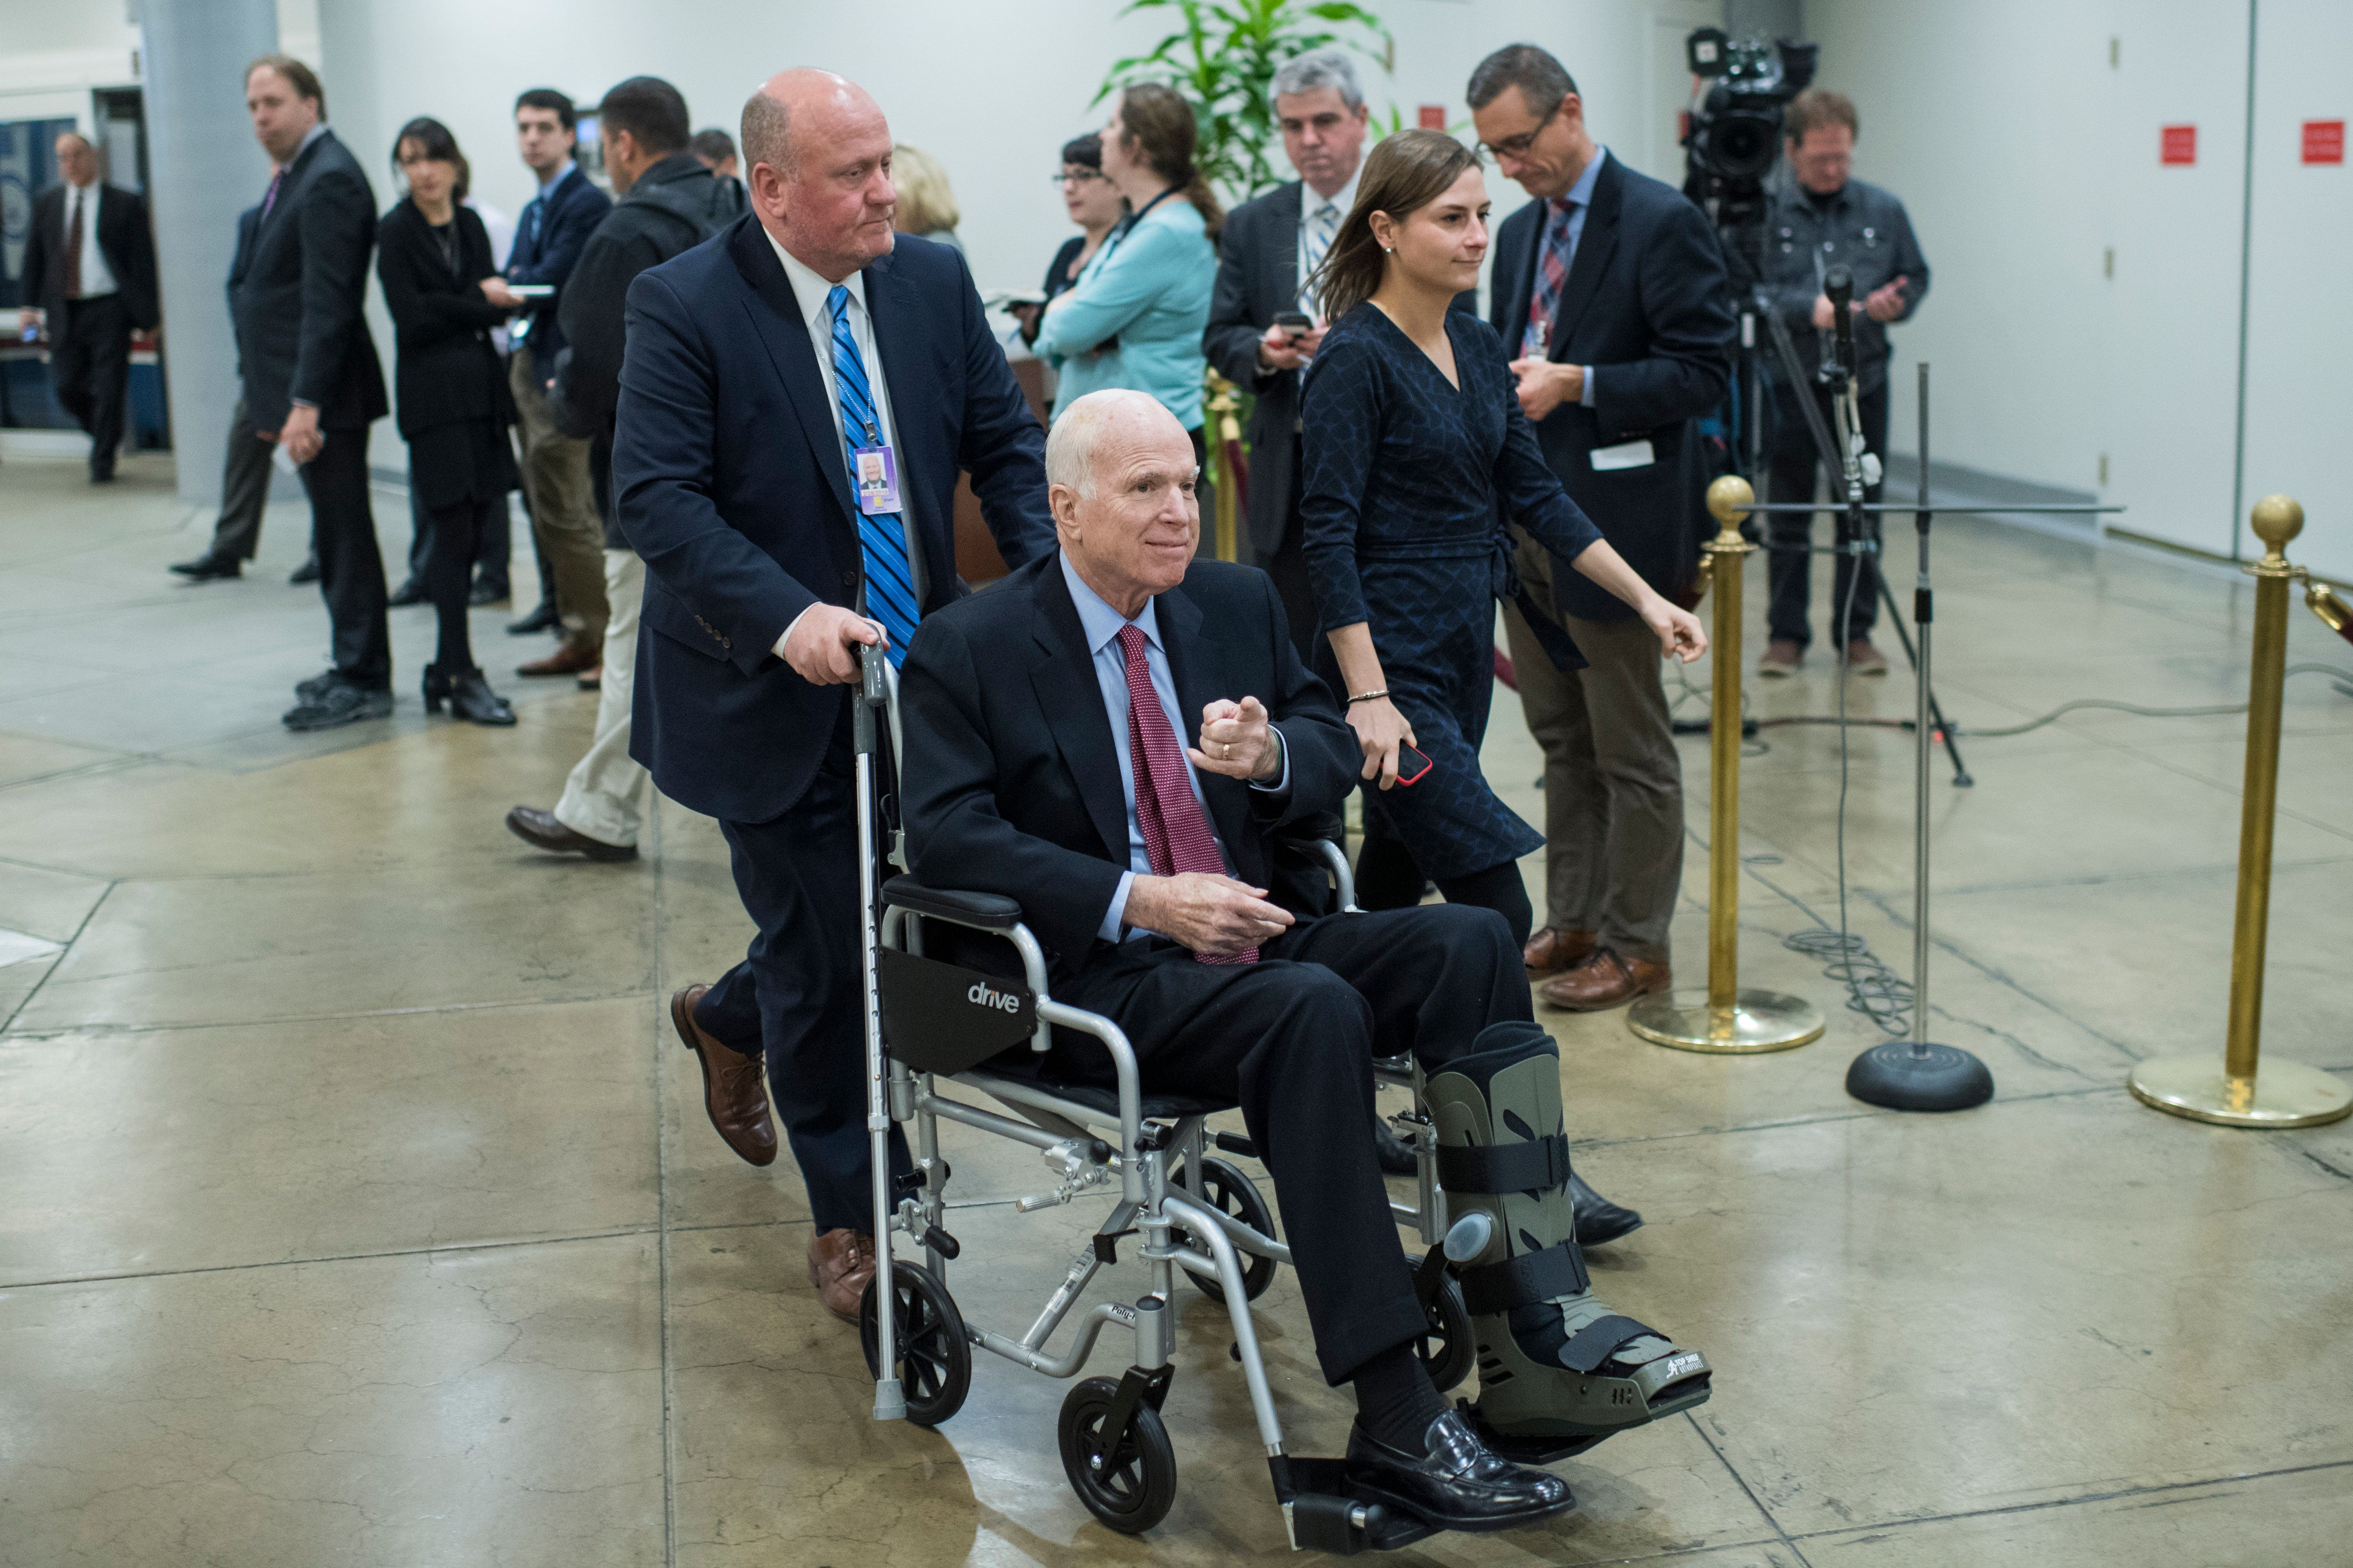 UNITED STATES - DECEMBER 06: Sen. John McCain, R-Ariz., is seen in the senate subway before a vote in the Capitol on December 6, 2017. (Photo By Tom Williams/CQ Roll Call)